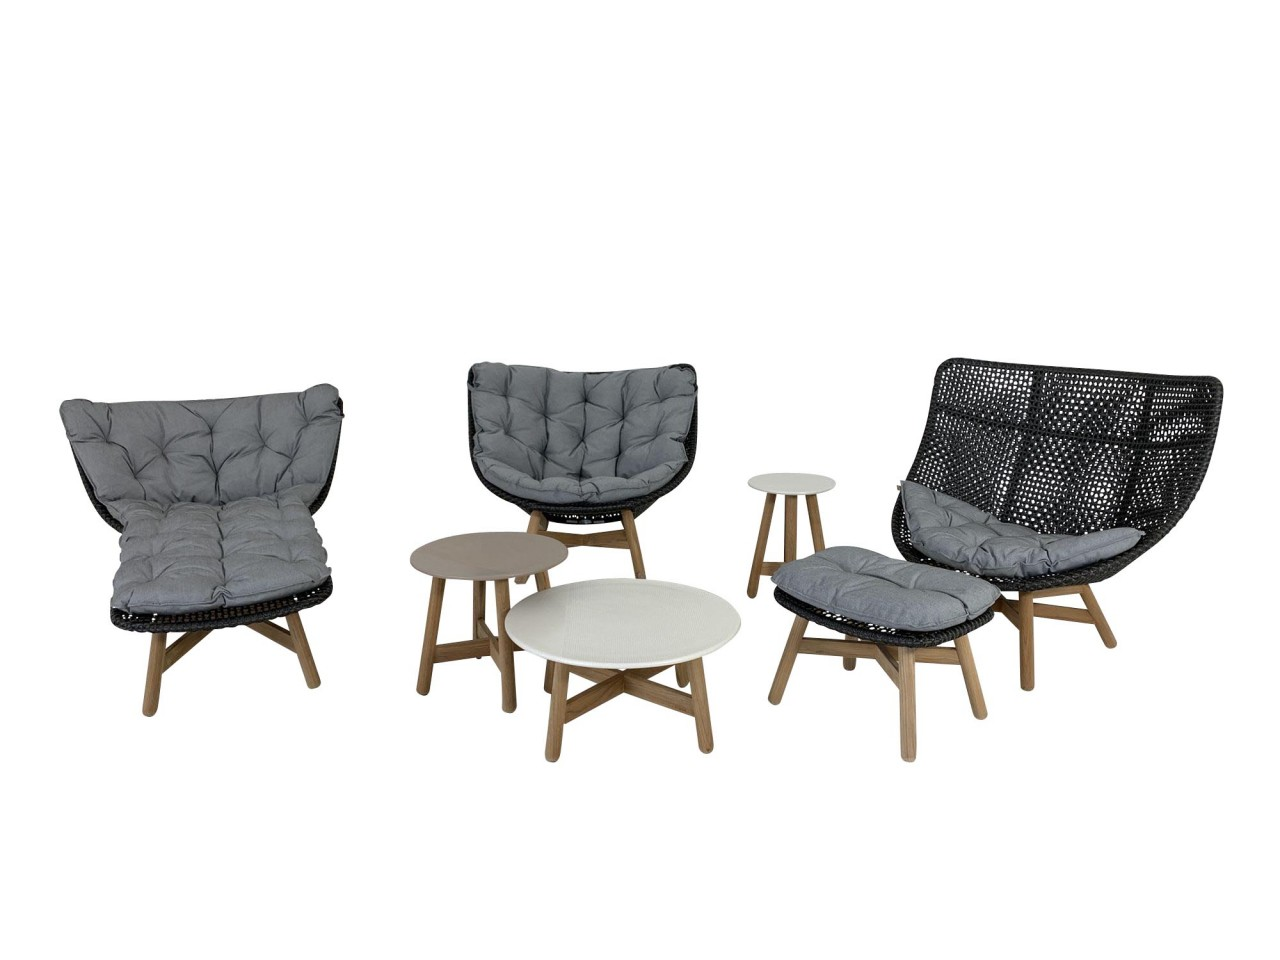 DEDON MBRACE ROCKING CHAIR, WING CHAIR mit DAYBED in arabica als SET